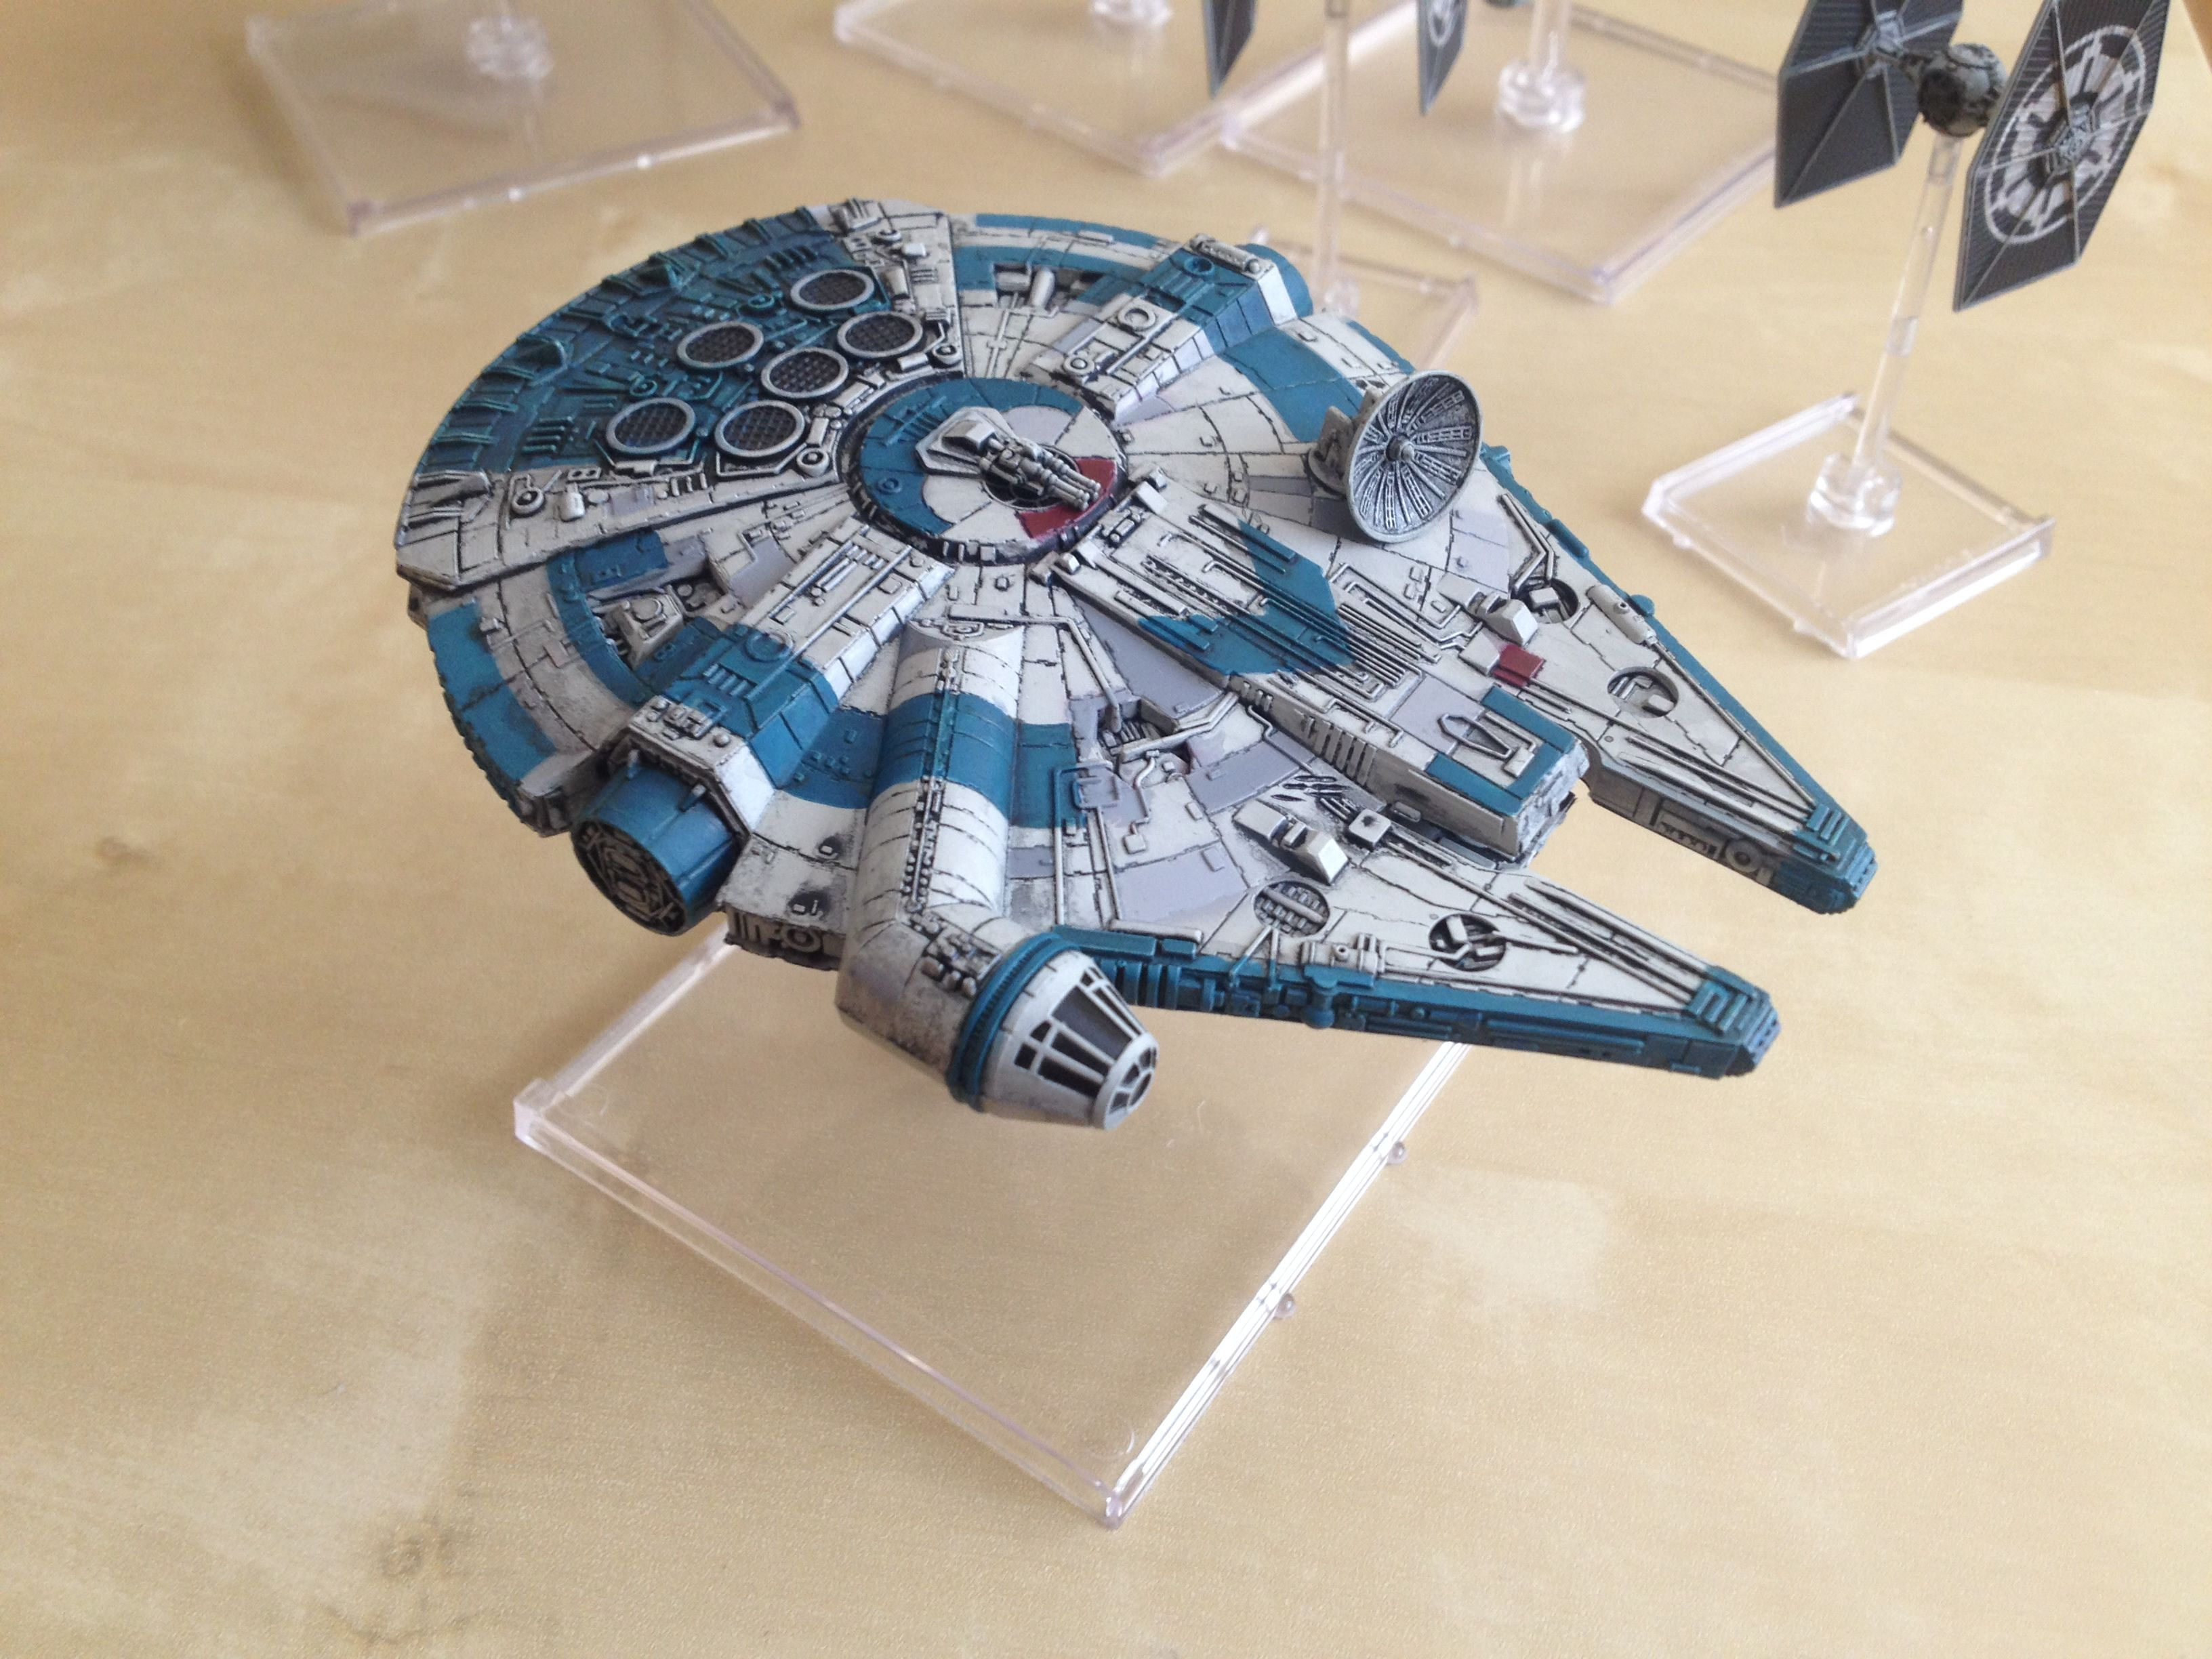 X Wing Miniatures Game Yt 1300 Repaint Star Wars Painting Star Wars Spaceships Star Wars Origami